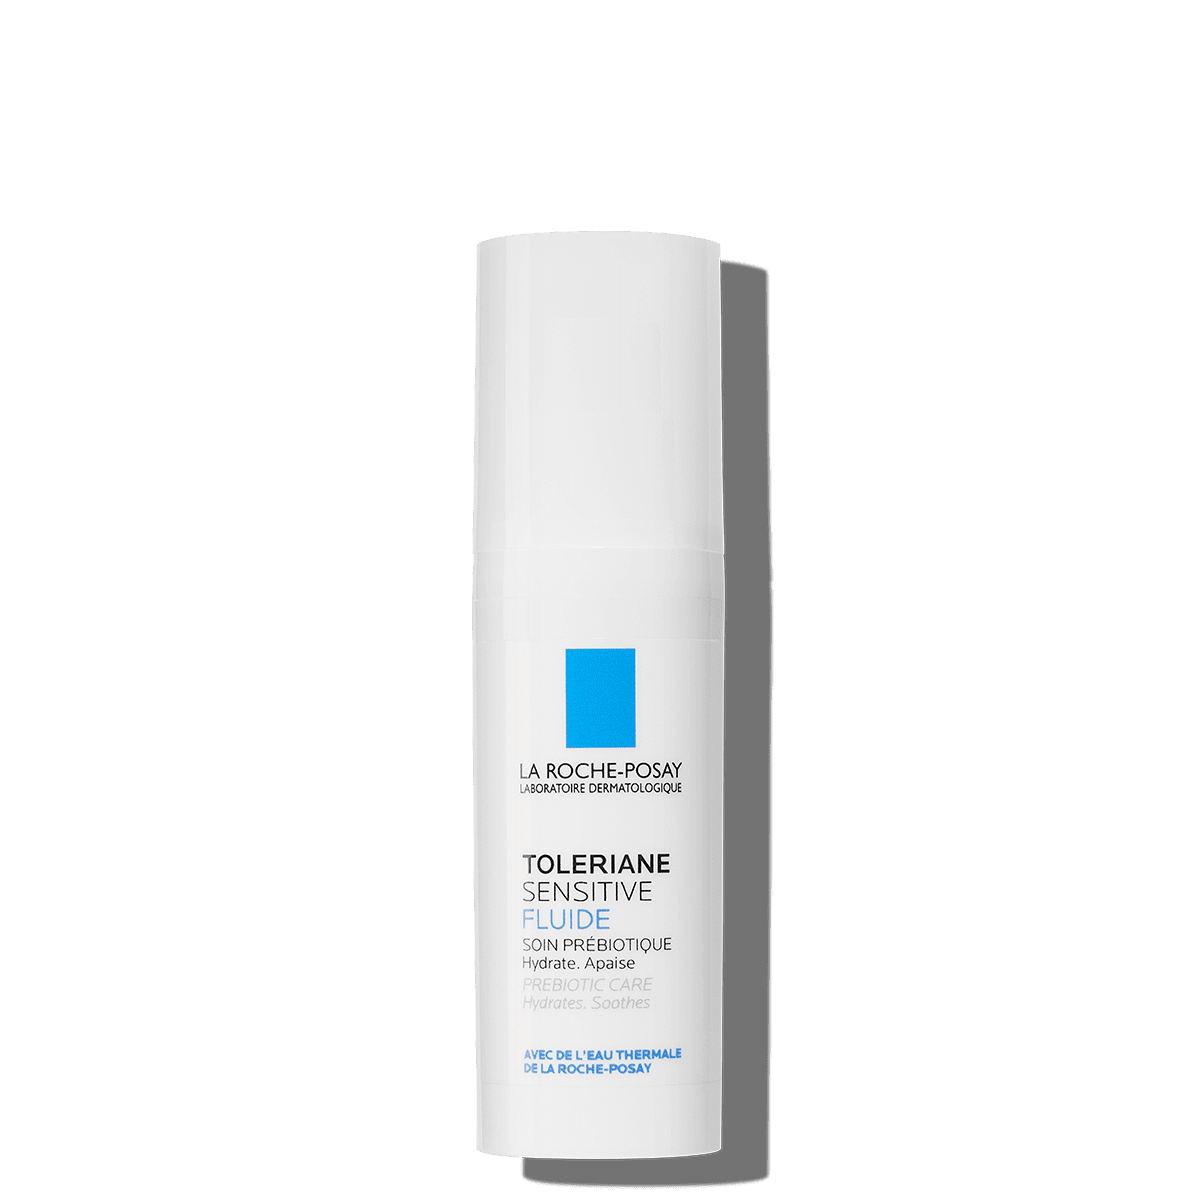 La Roche Posay ProductPage Sensitive Allergic Toleriane Sensitive Flui